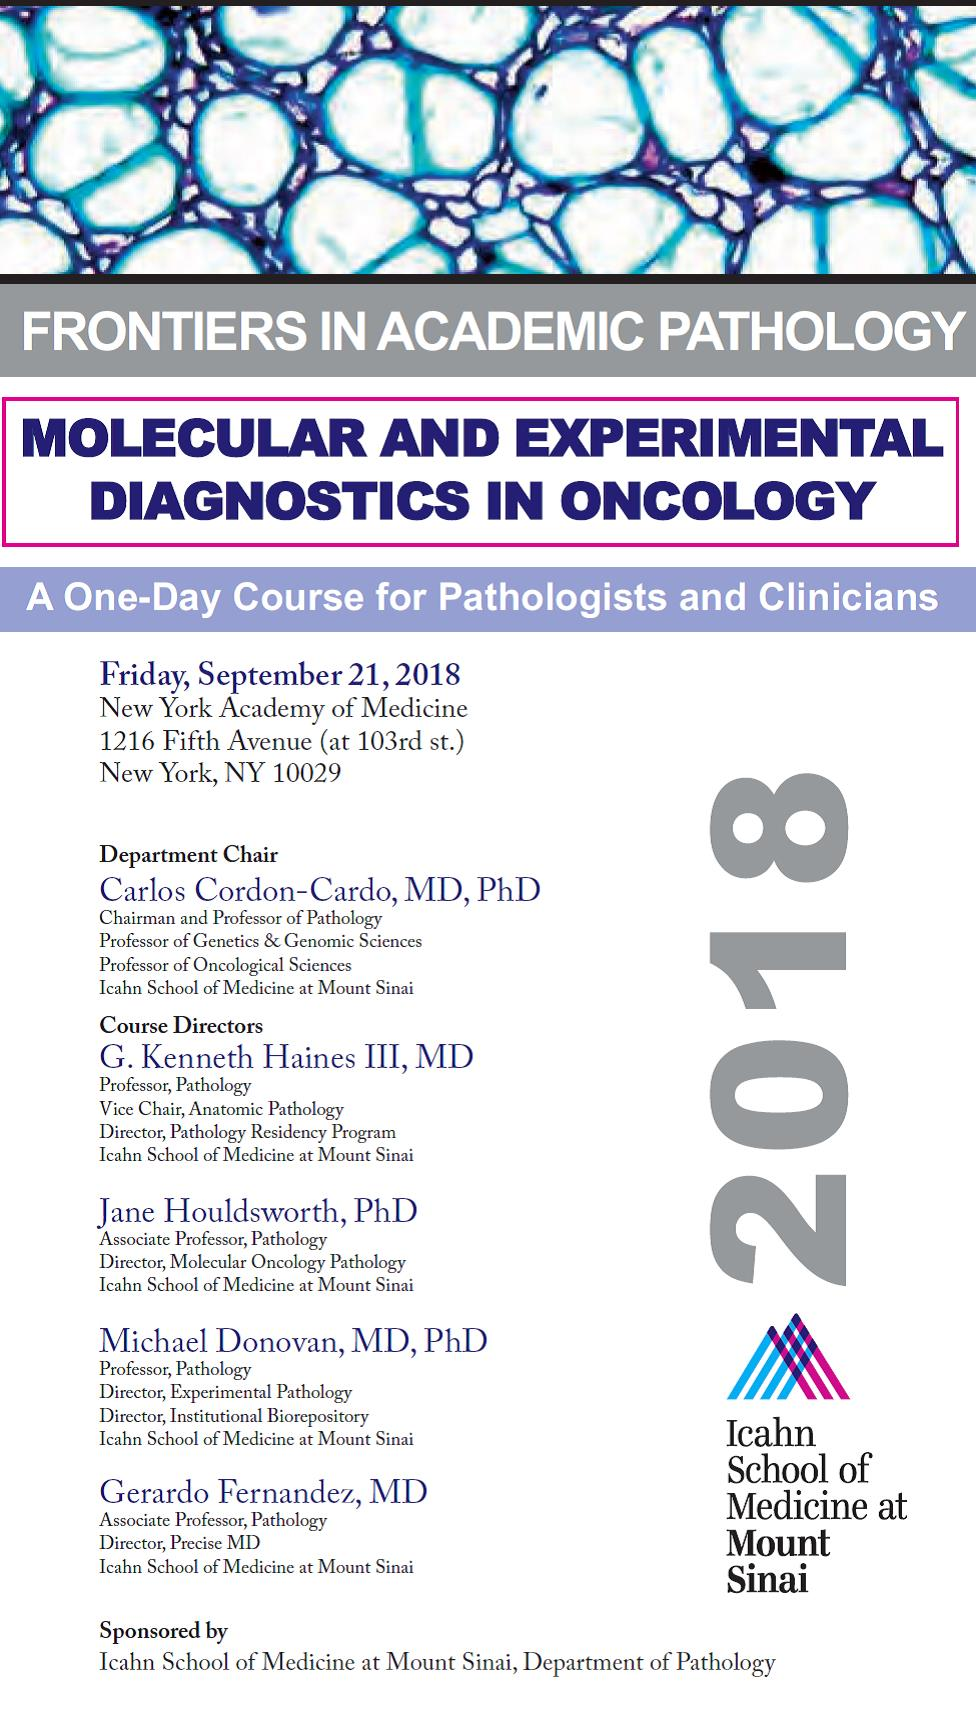 Frontiers in Academic Pathology: Molecular and Experimental Diagnostics in Oncology Banner